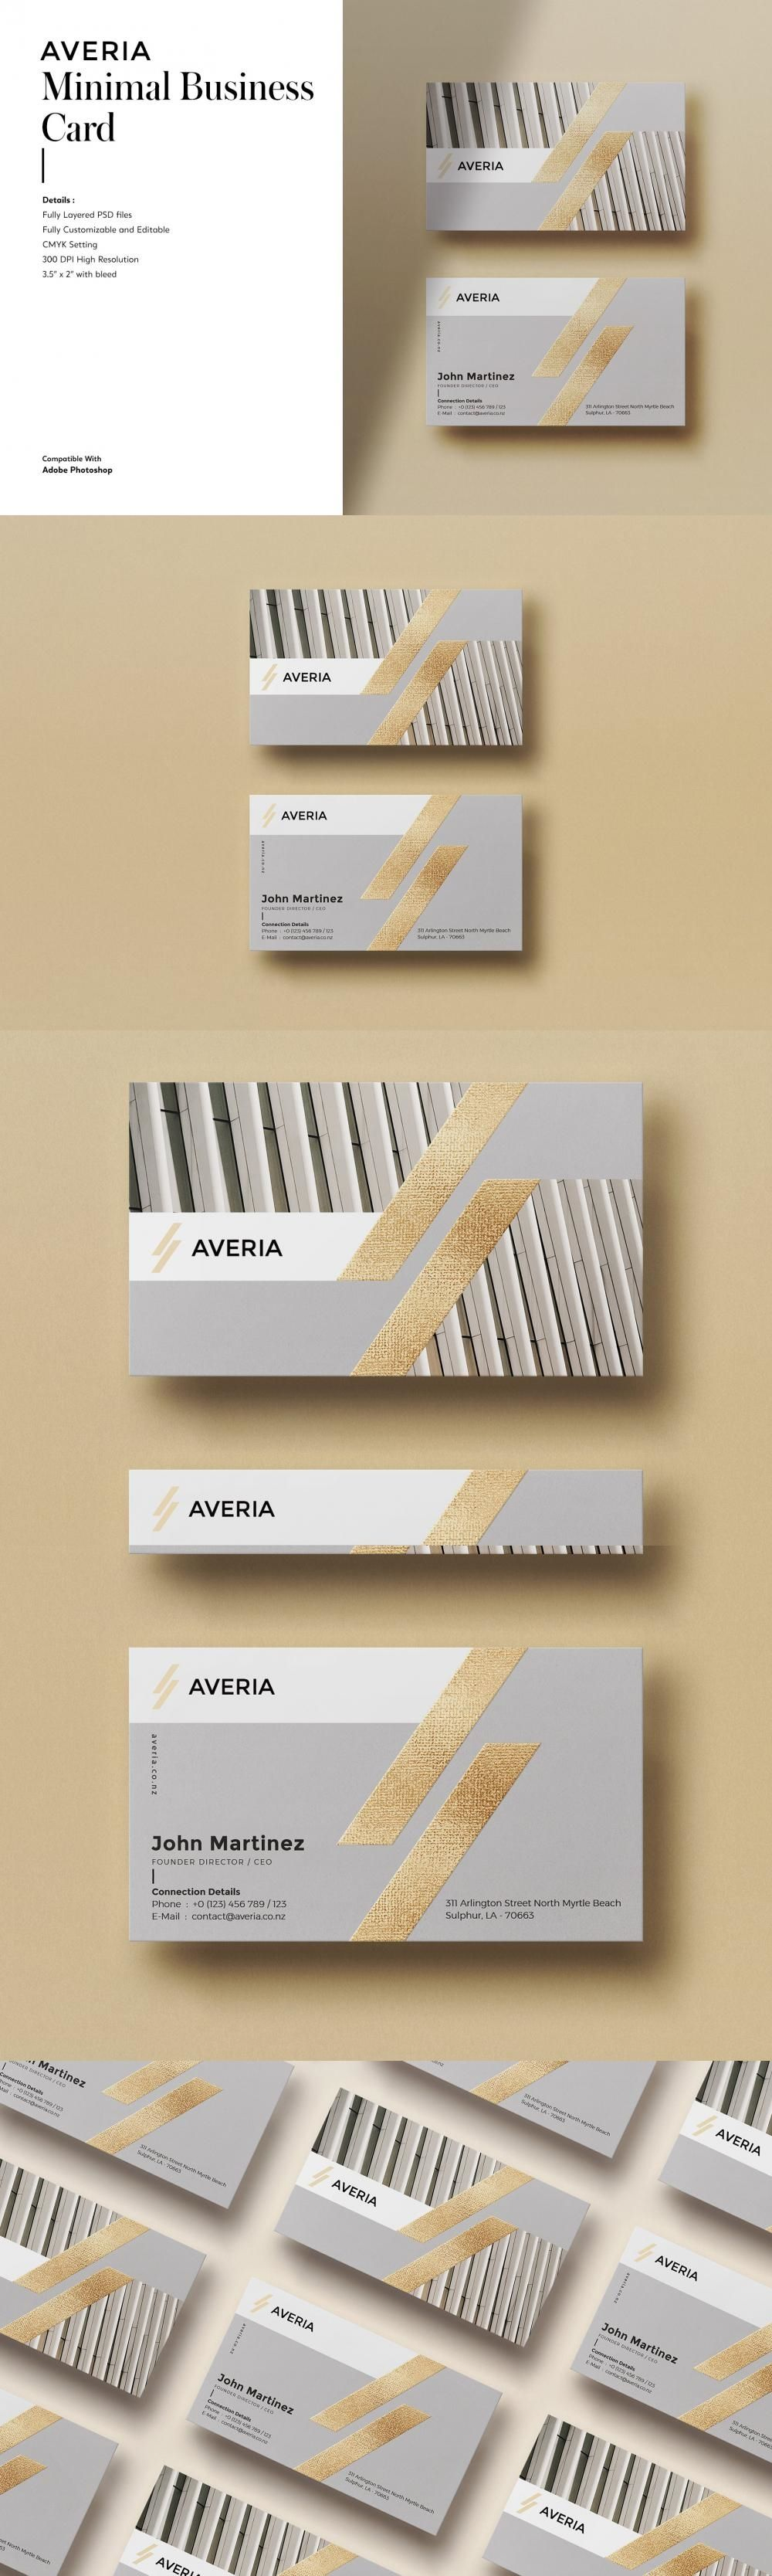 Minimal Business Card Template Businesscardtemplate Vintage Letter Businesscardtempla In 2021 Minimal Business Card Business Cards Creative Cleaning Business Cards